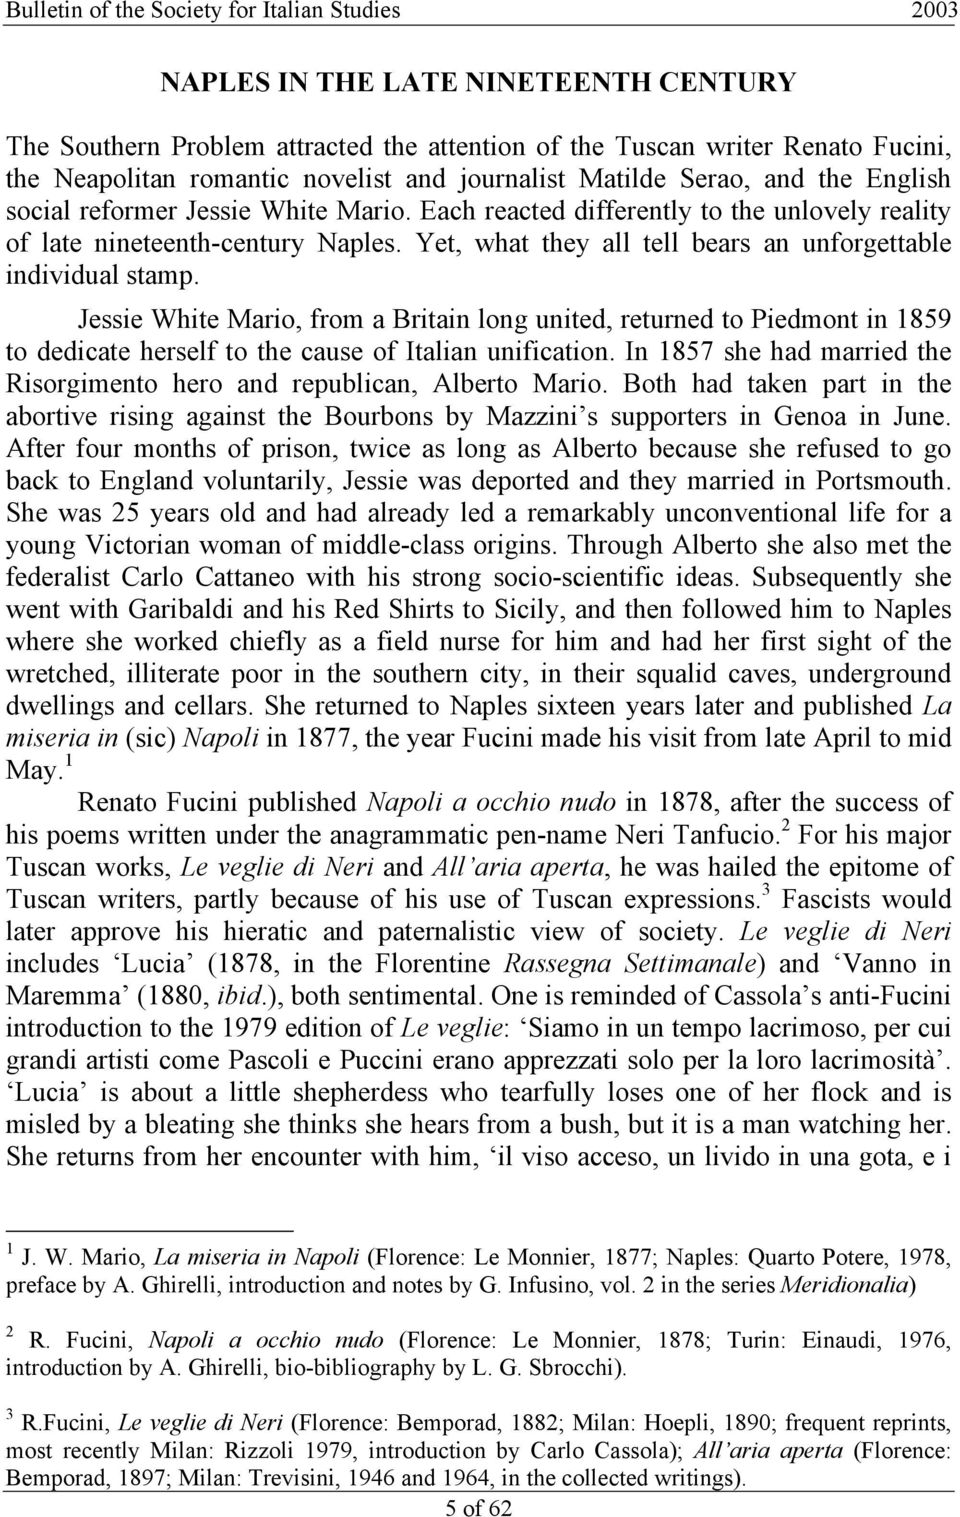 Jessie White Mario, from a Britain long united, returned to Piedmont in 1859 to dedicate herself to the cause of Italian unification.